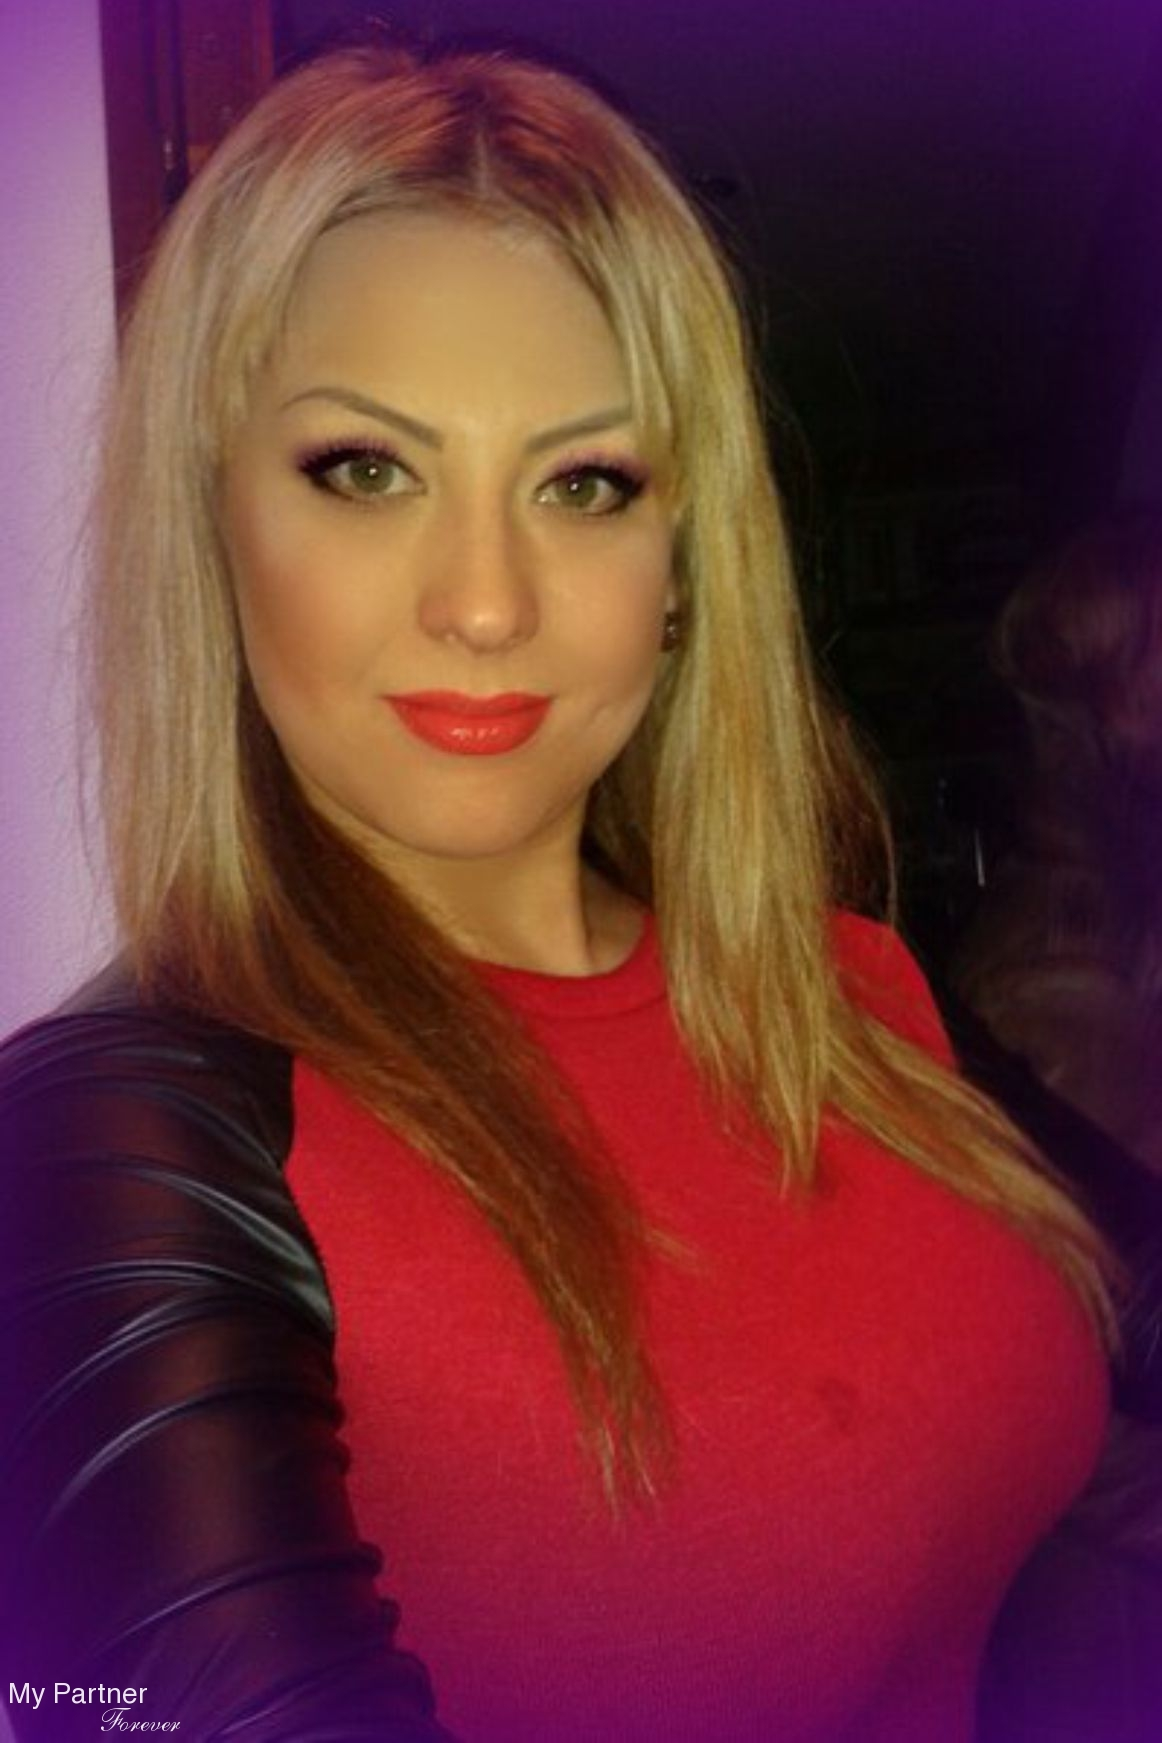 European singles free dating sites